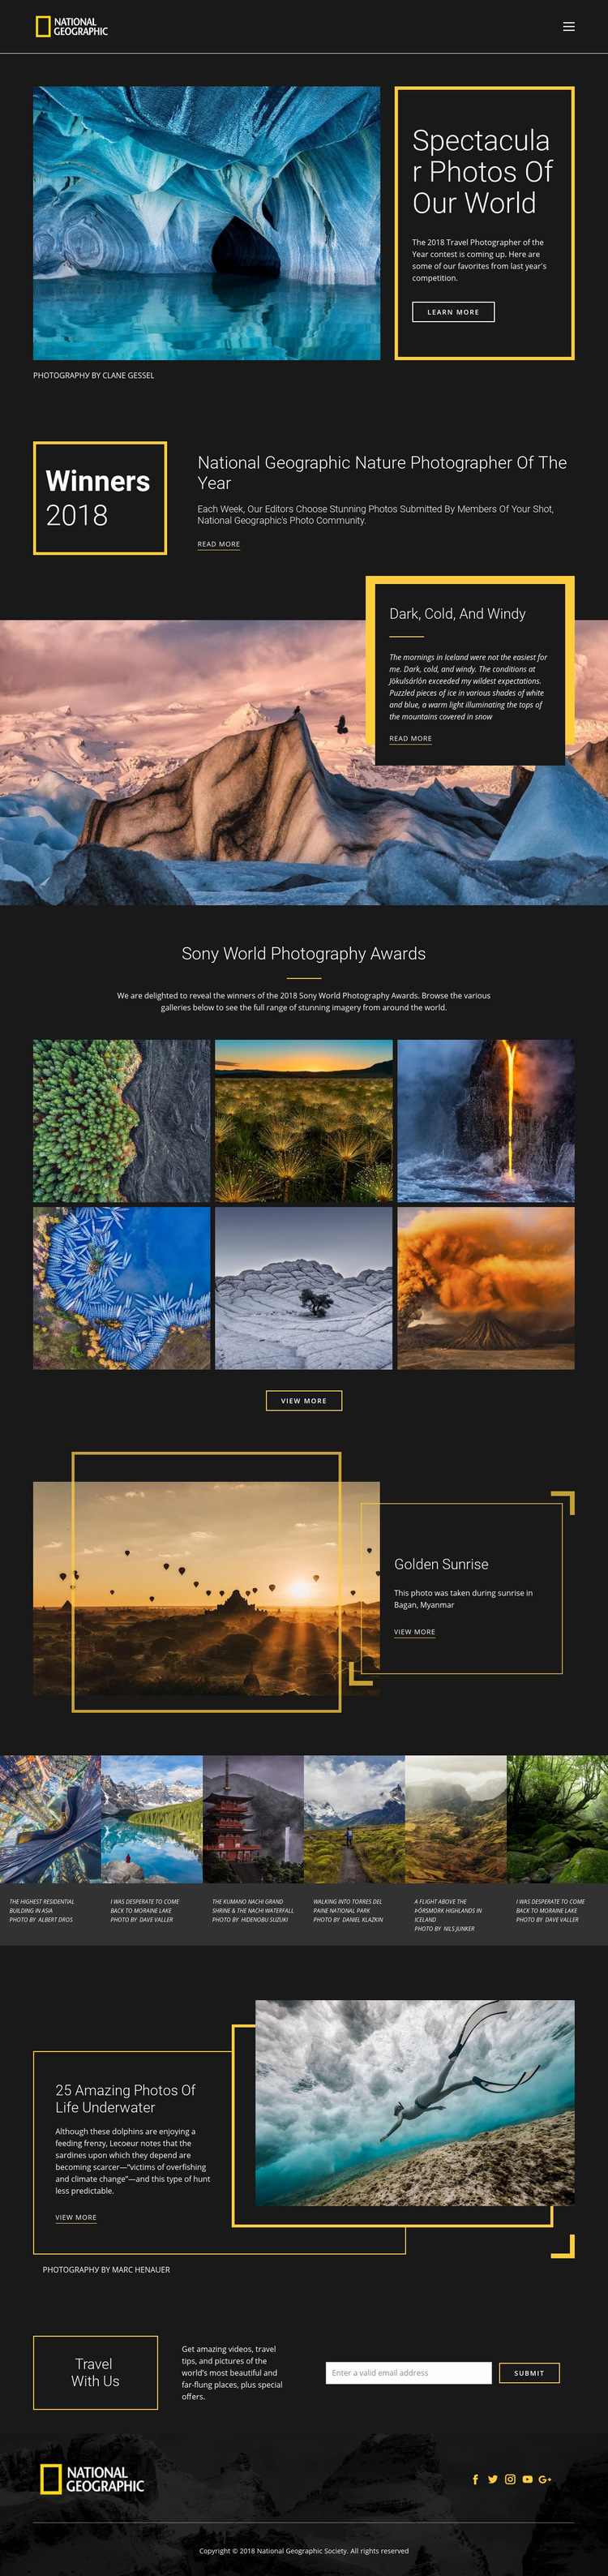 Pictures of nature Web Page Design